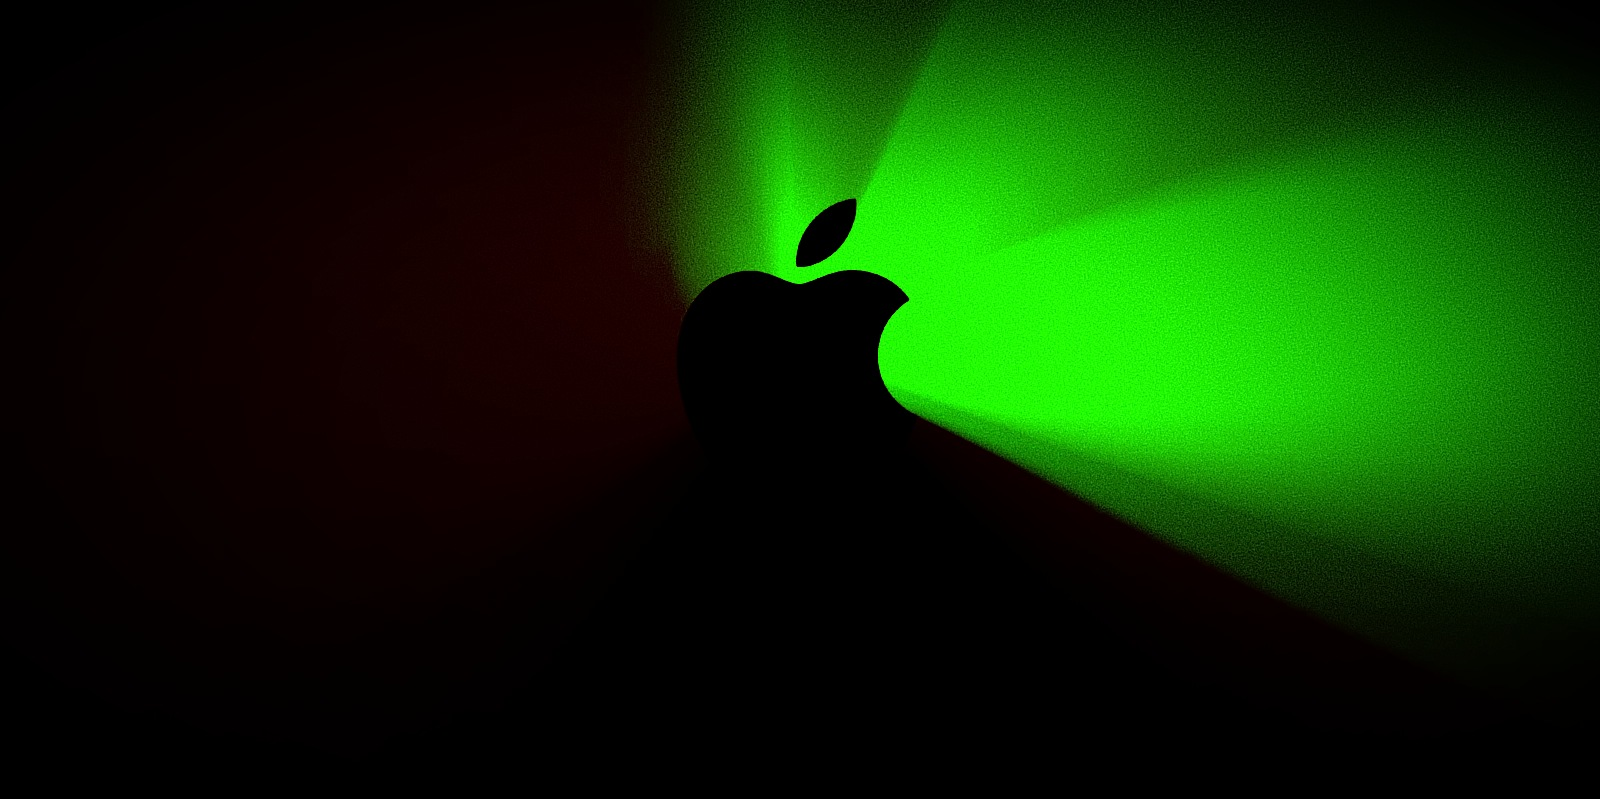 Apple fixes macOS zero-day bug exploited by Shlayer malware